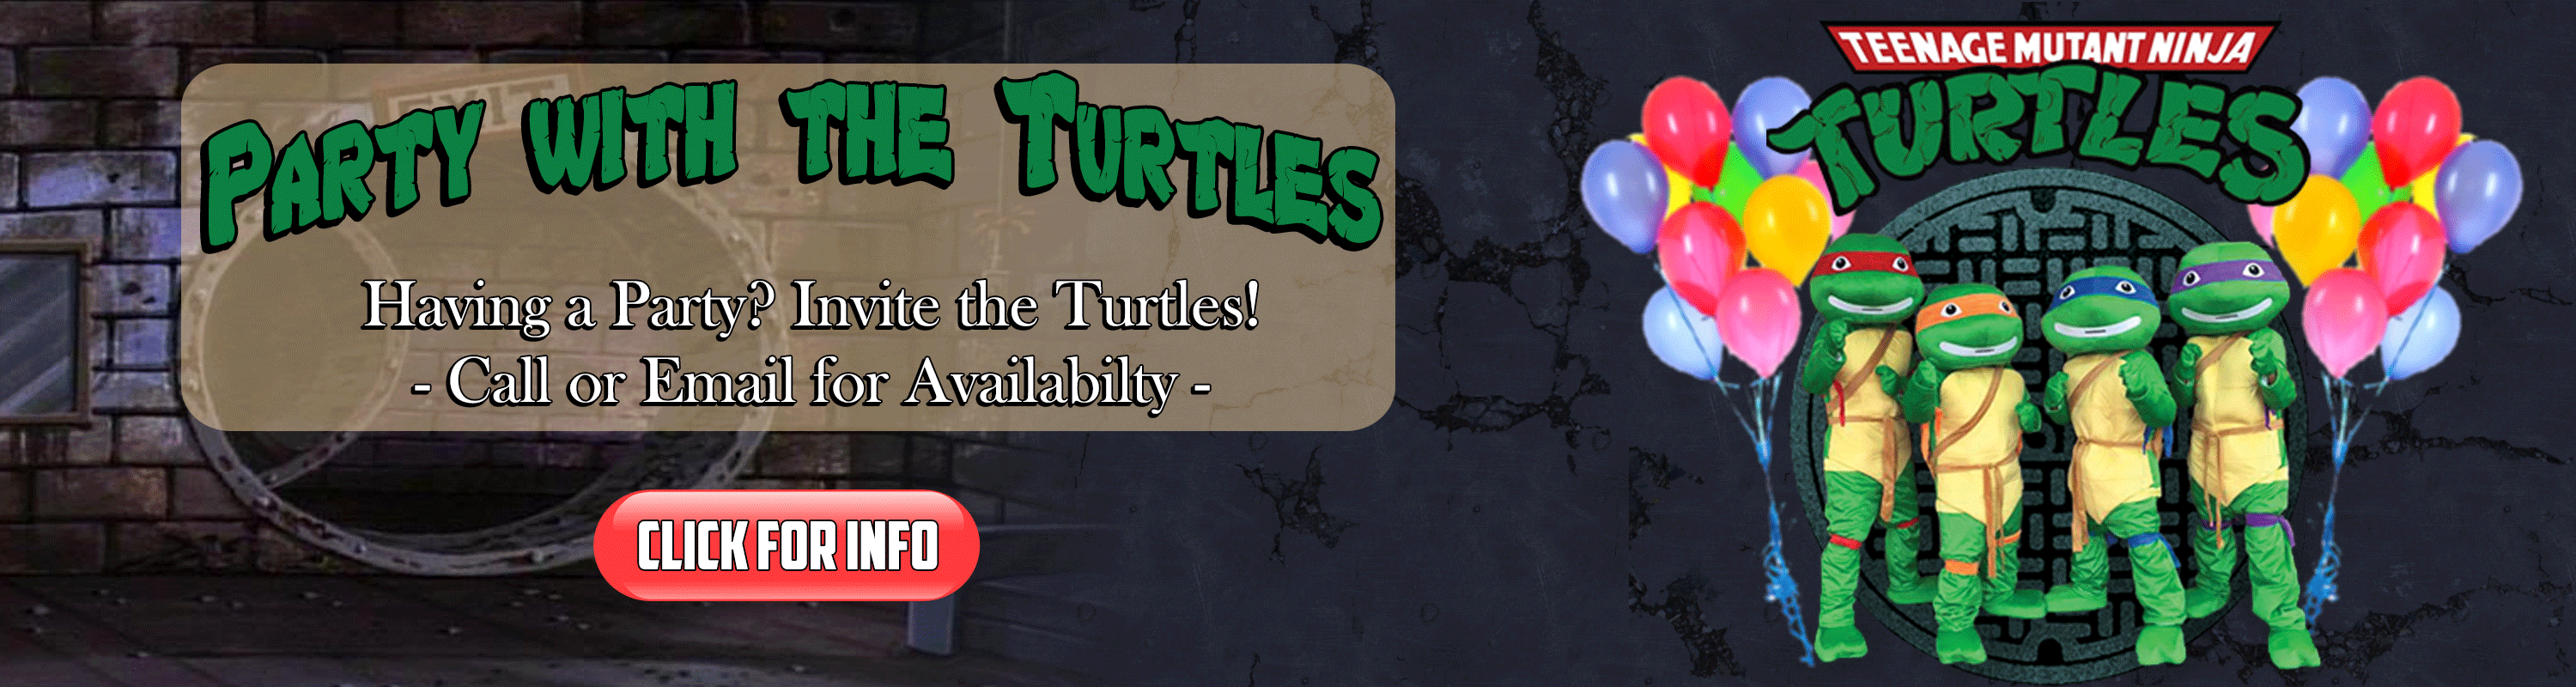 Party with the Turtles